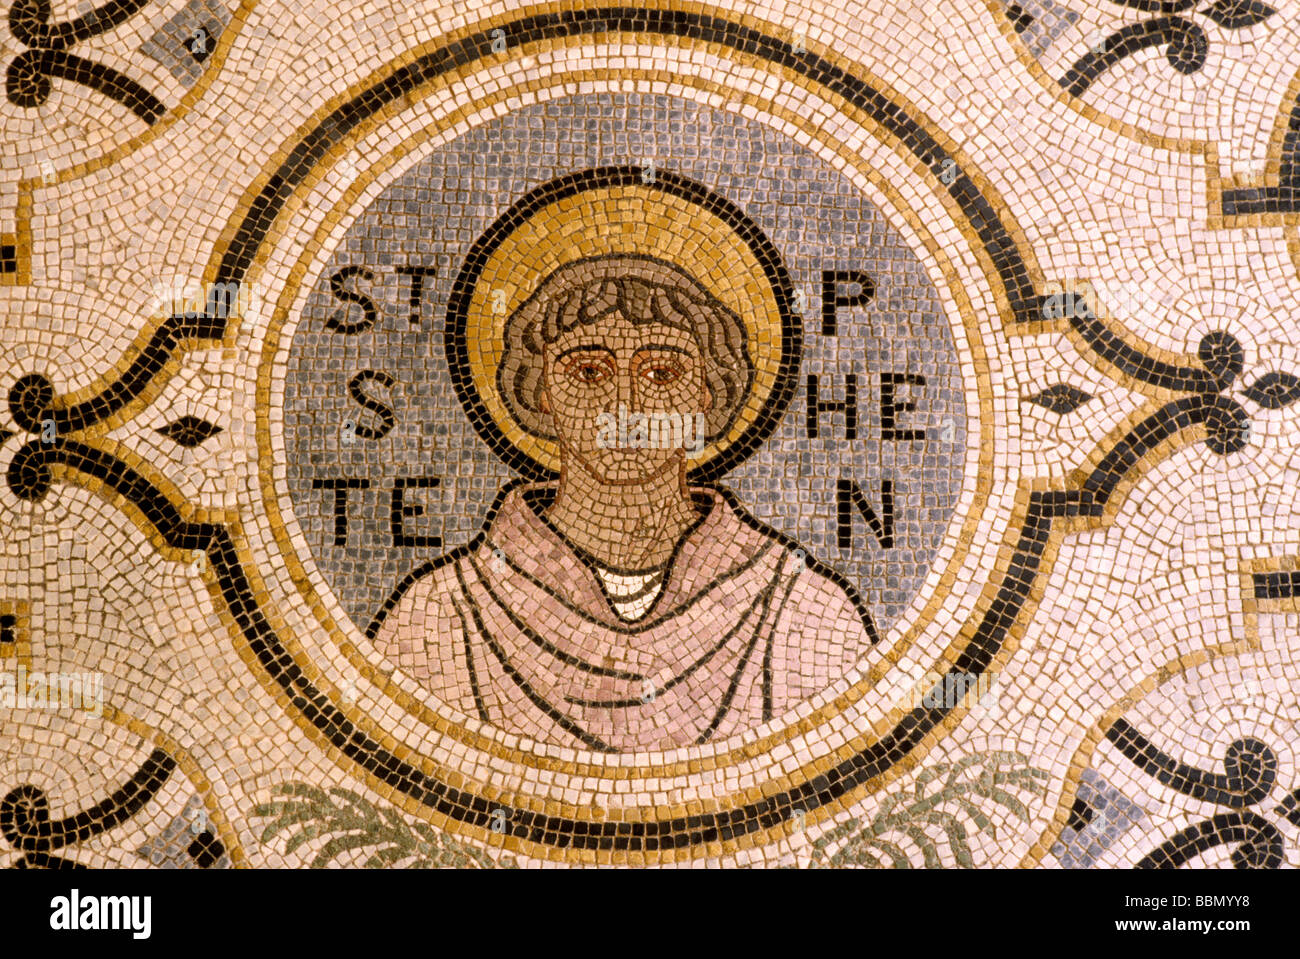 St Stephen Walbrook church interior City of London, floor Mosaic of Saint Stephen England UK - Stock Image